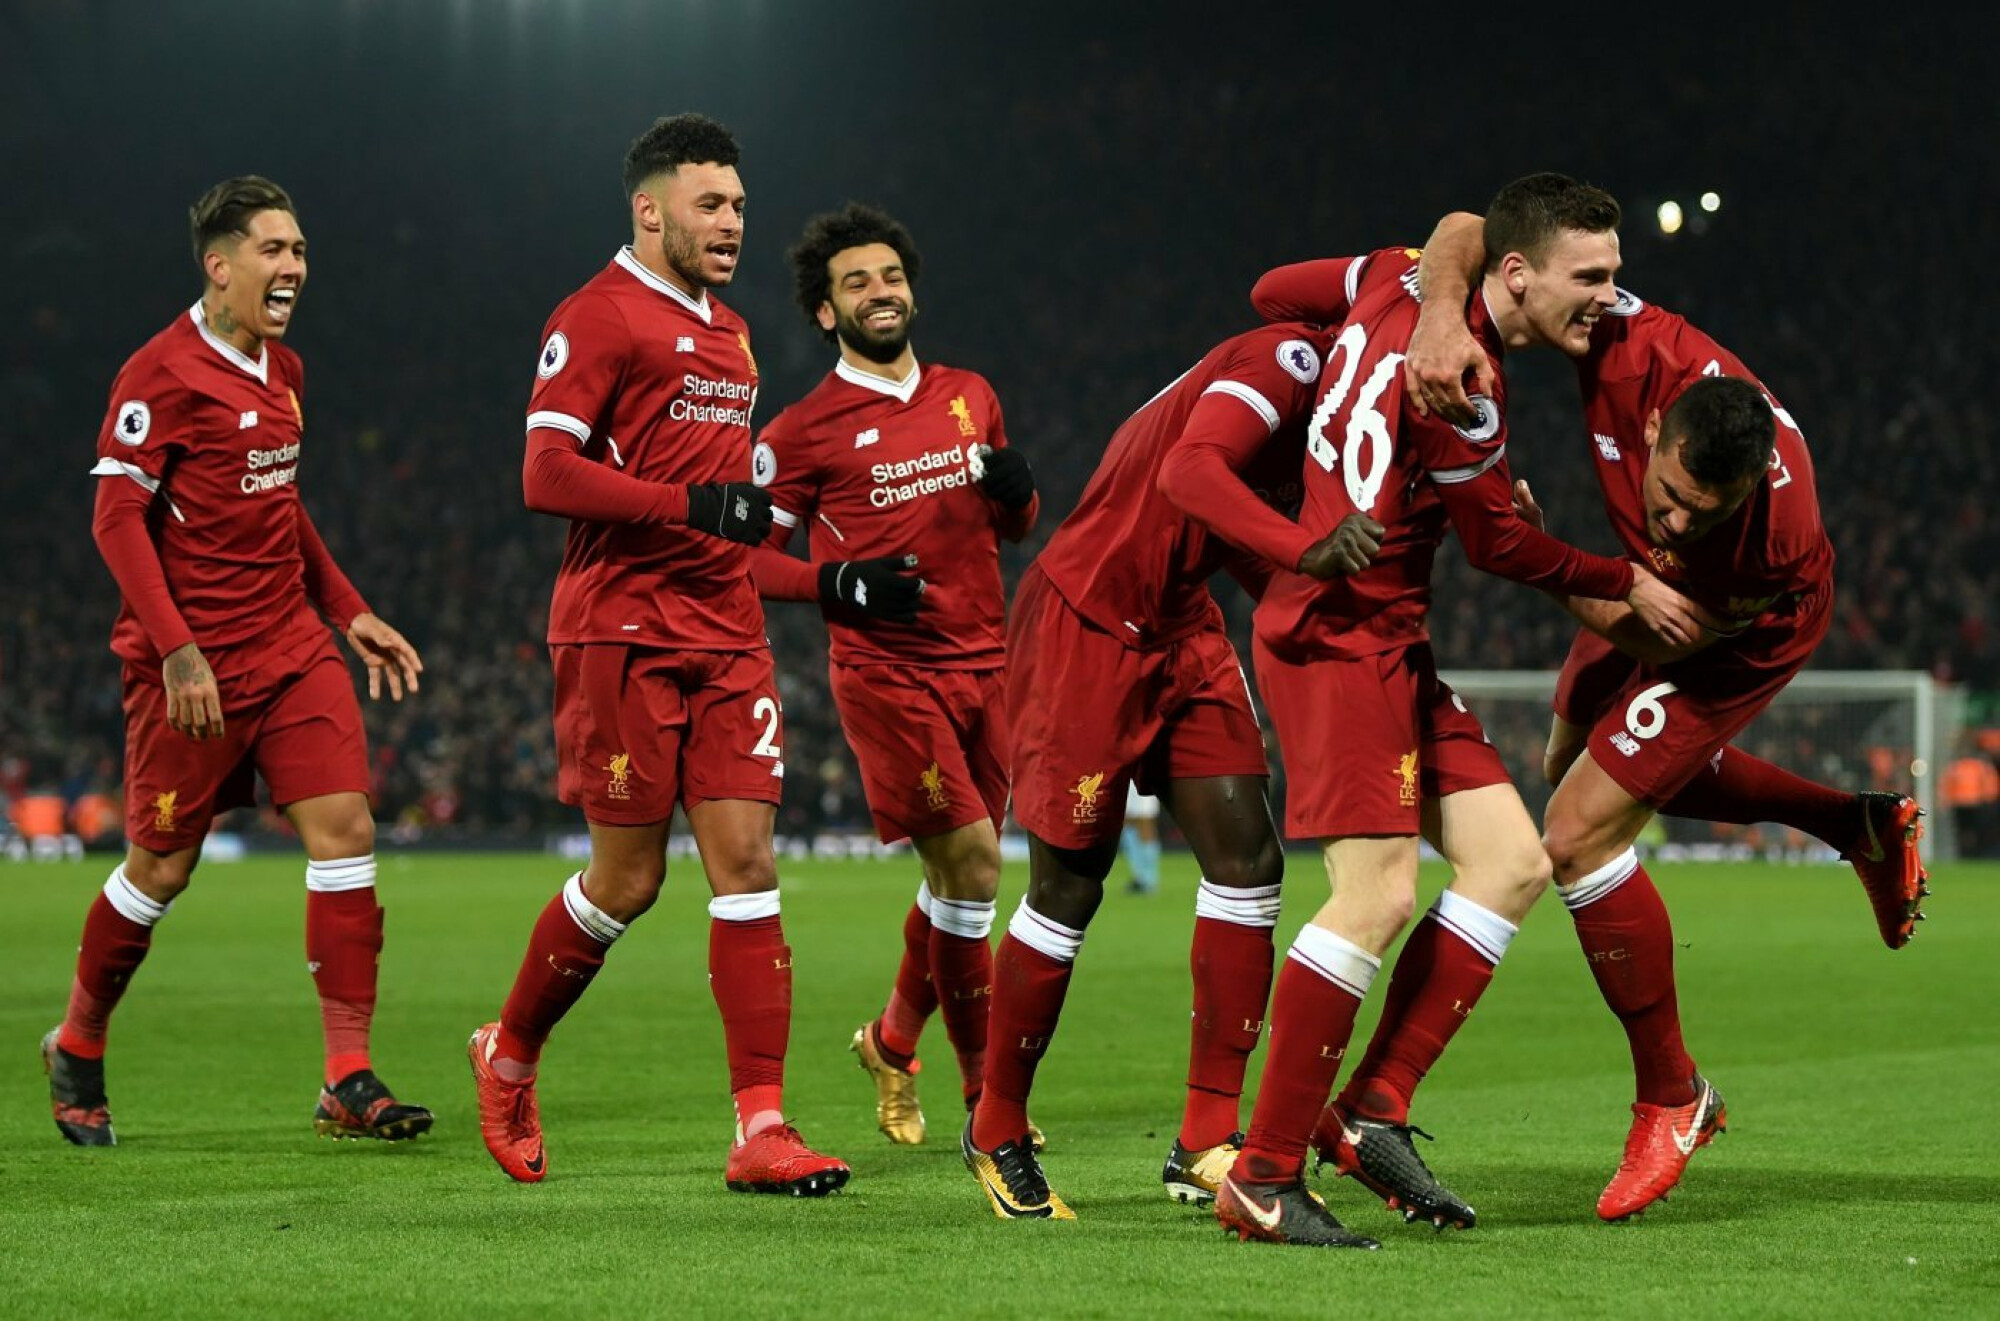 Liverpool: A reinvigorated beast under Jurgen Klopp